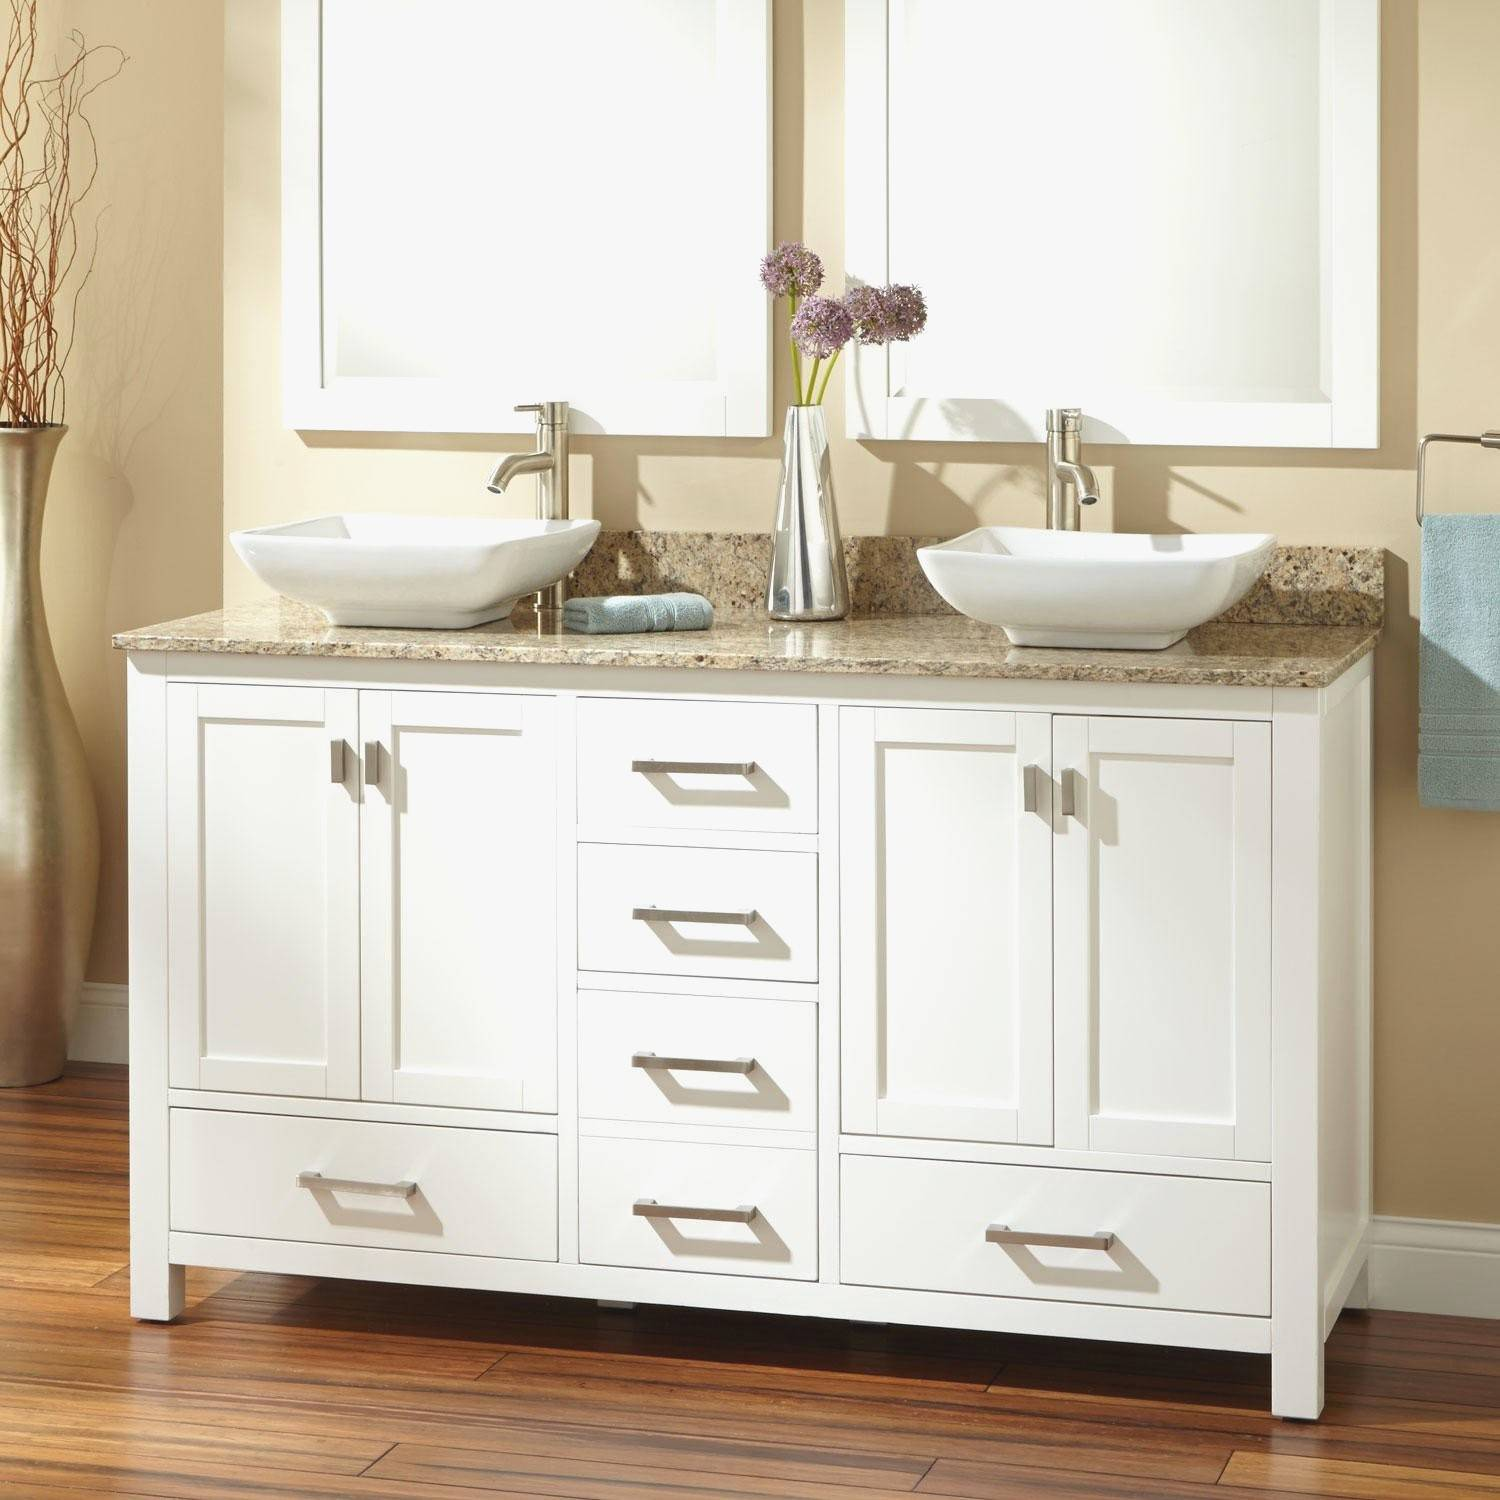 double vanity bathroom cabinets news bathroom 38 bathroom sink cabinets great inspirational corner of double vanity bathroom cabinets